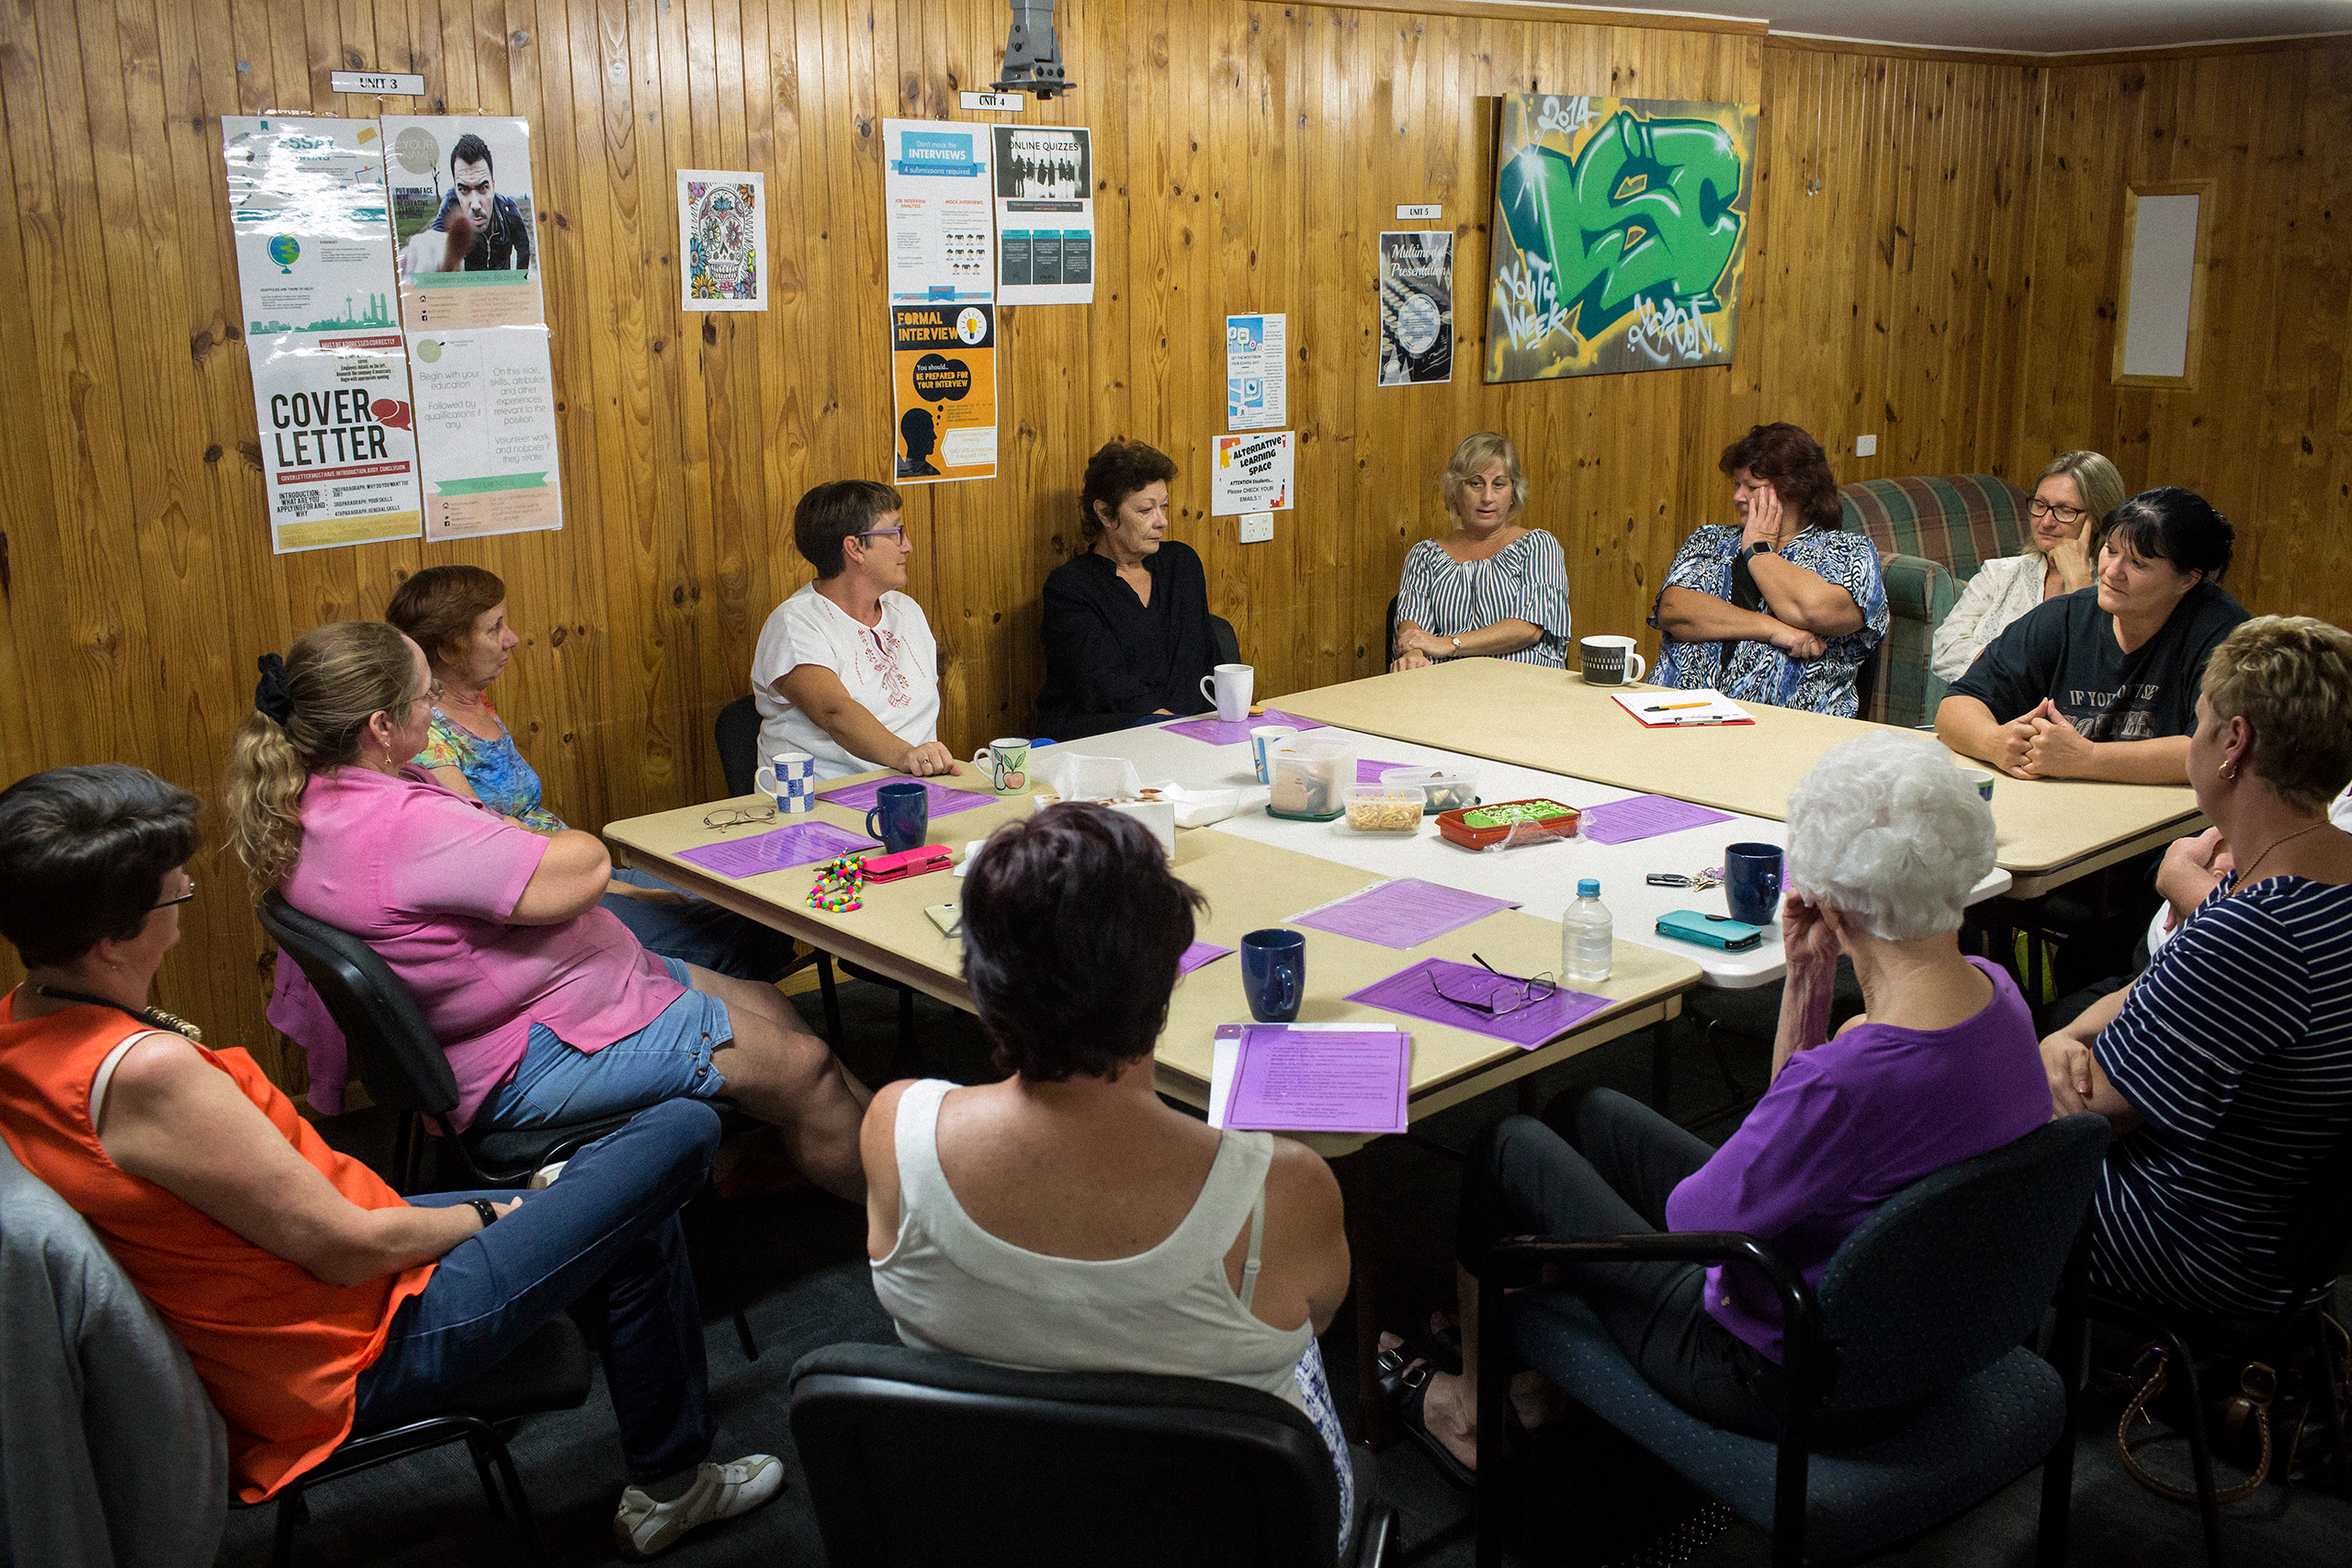 Members of a support group that brings together loved ones of ice addicts at a community center in Yeppoon, north of Rockhampton, in April 2017.